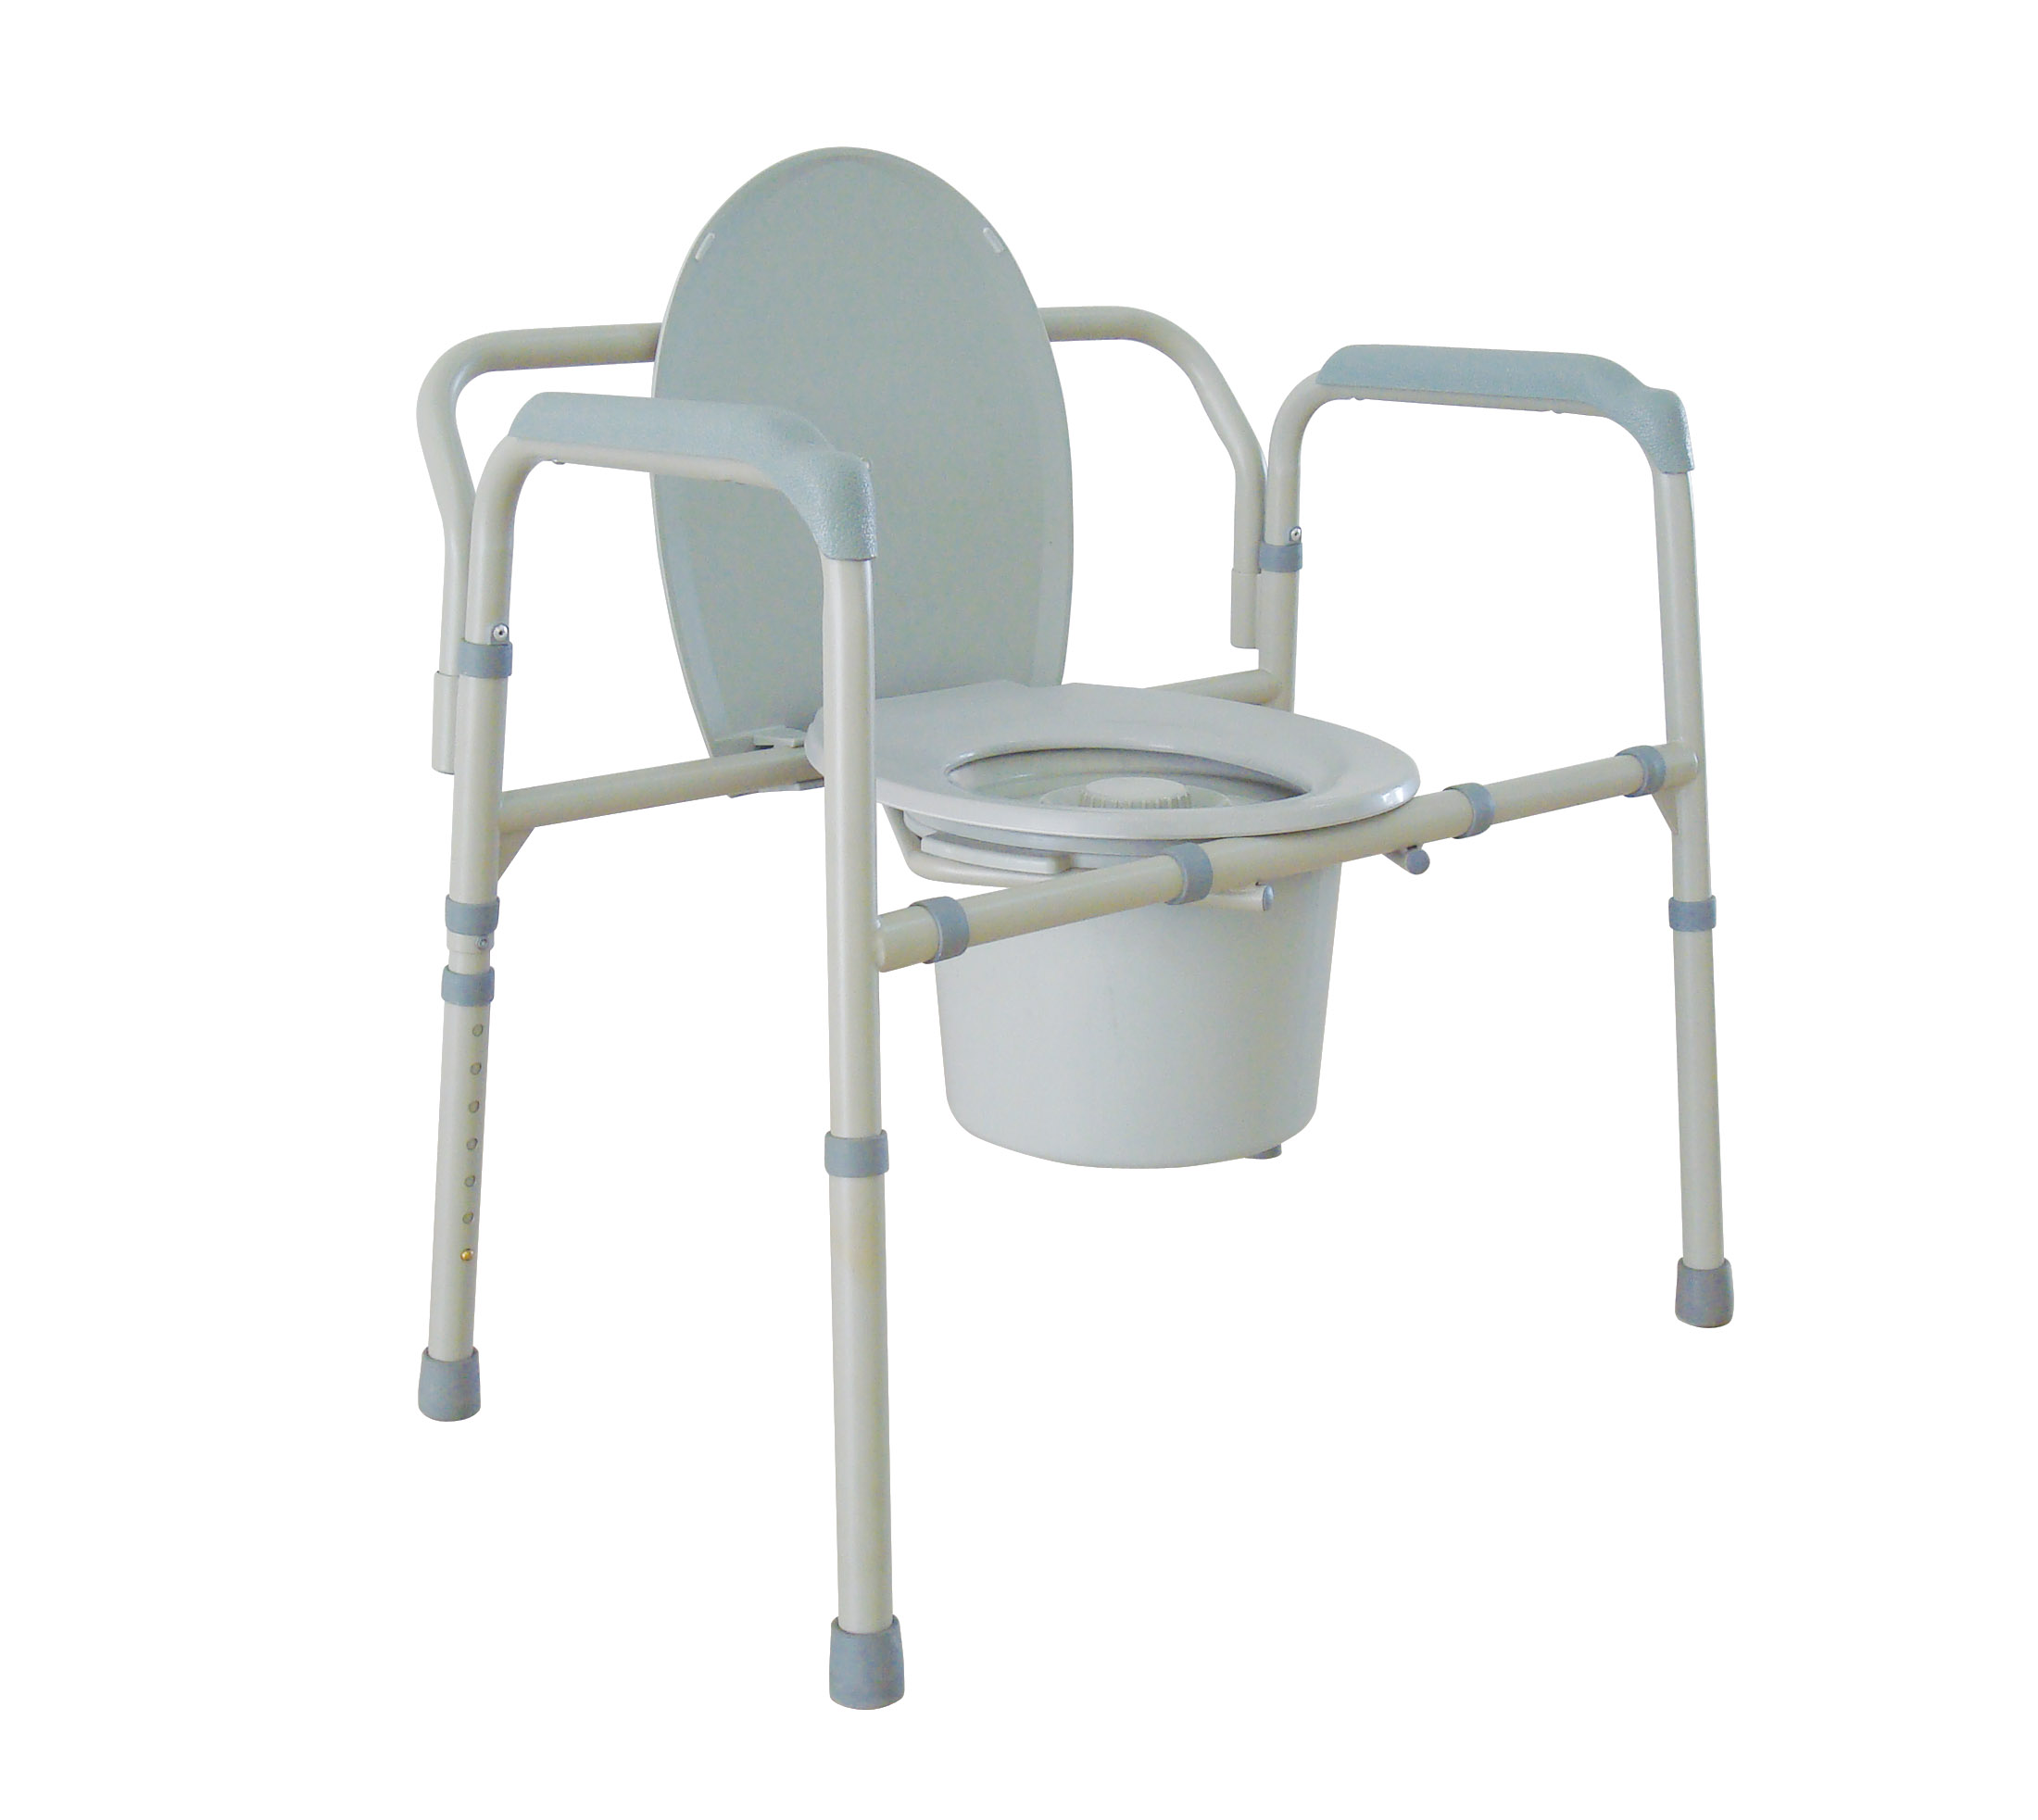 portable potty chair plaid upholstered chairs drive medical 11117n 2 commode